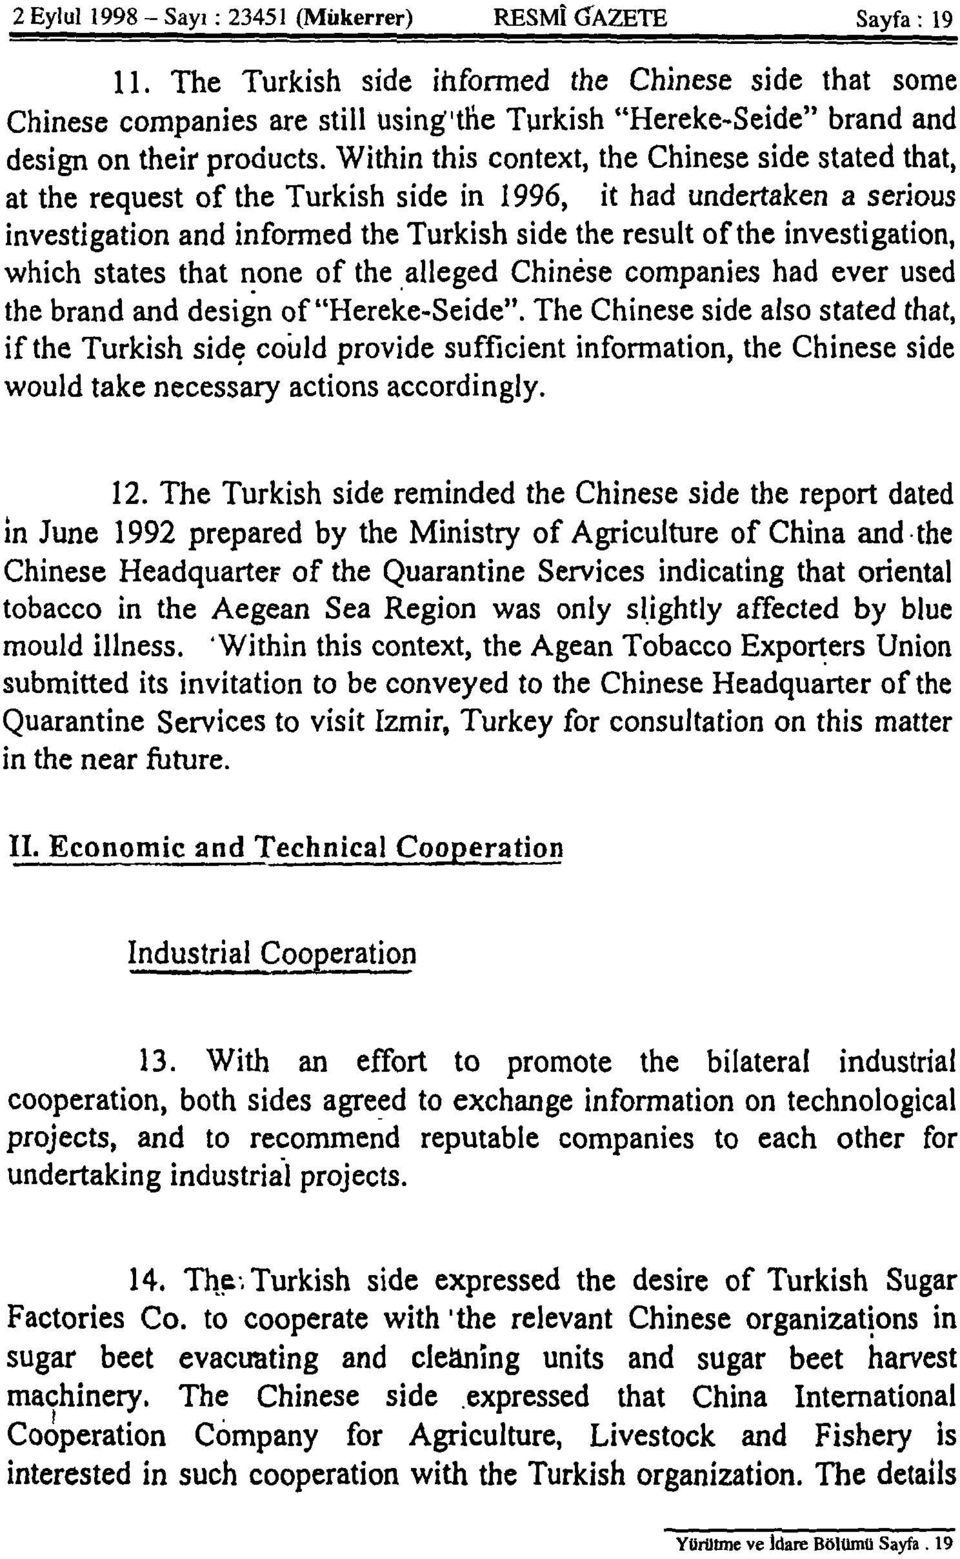 Within this context, the Chinese side stated that, at the request of the Turkish side in 1996, it had undertaken a serious investigation and informed the Turkish side the result of the investigation,